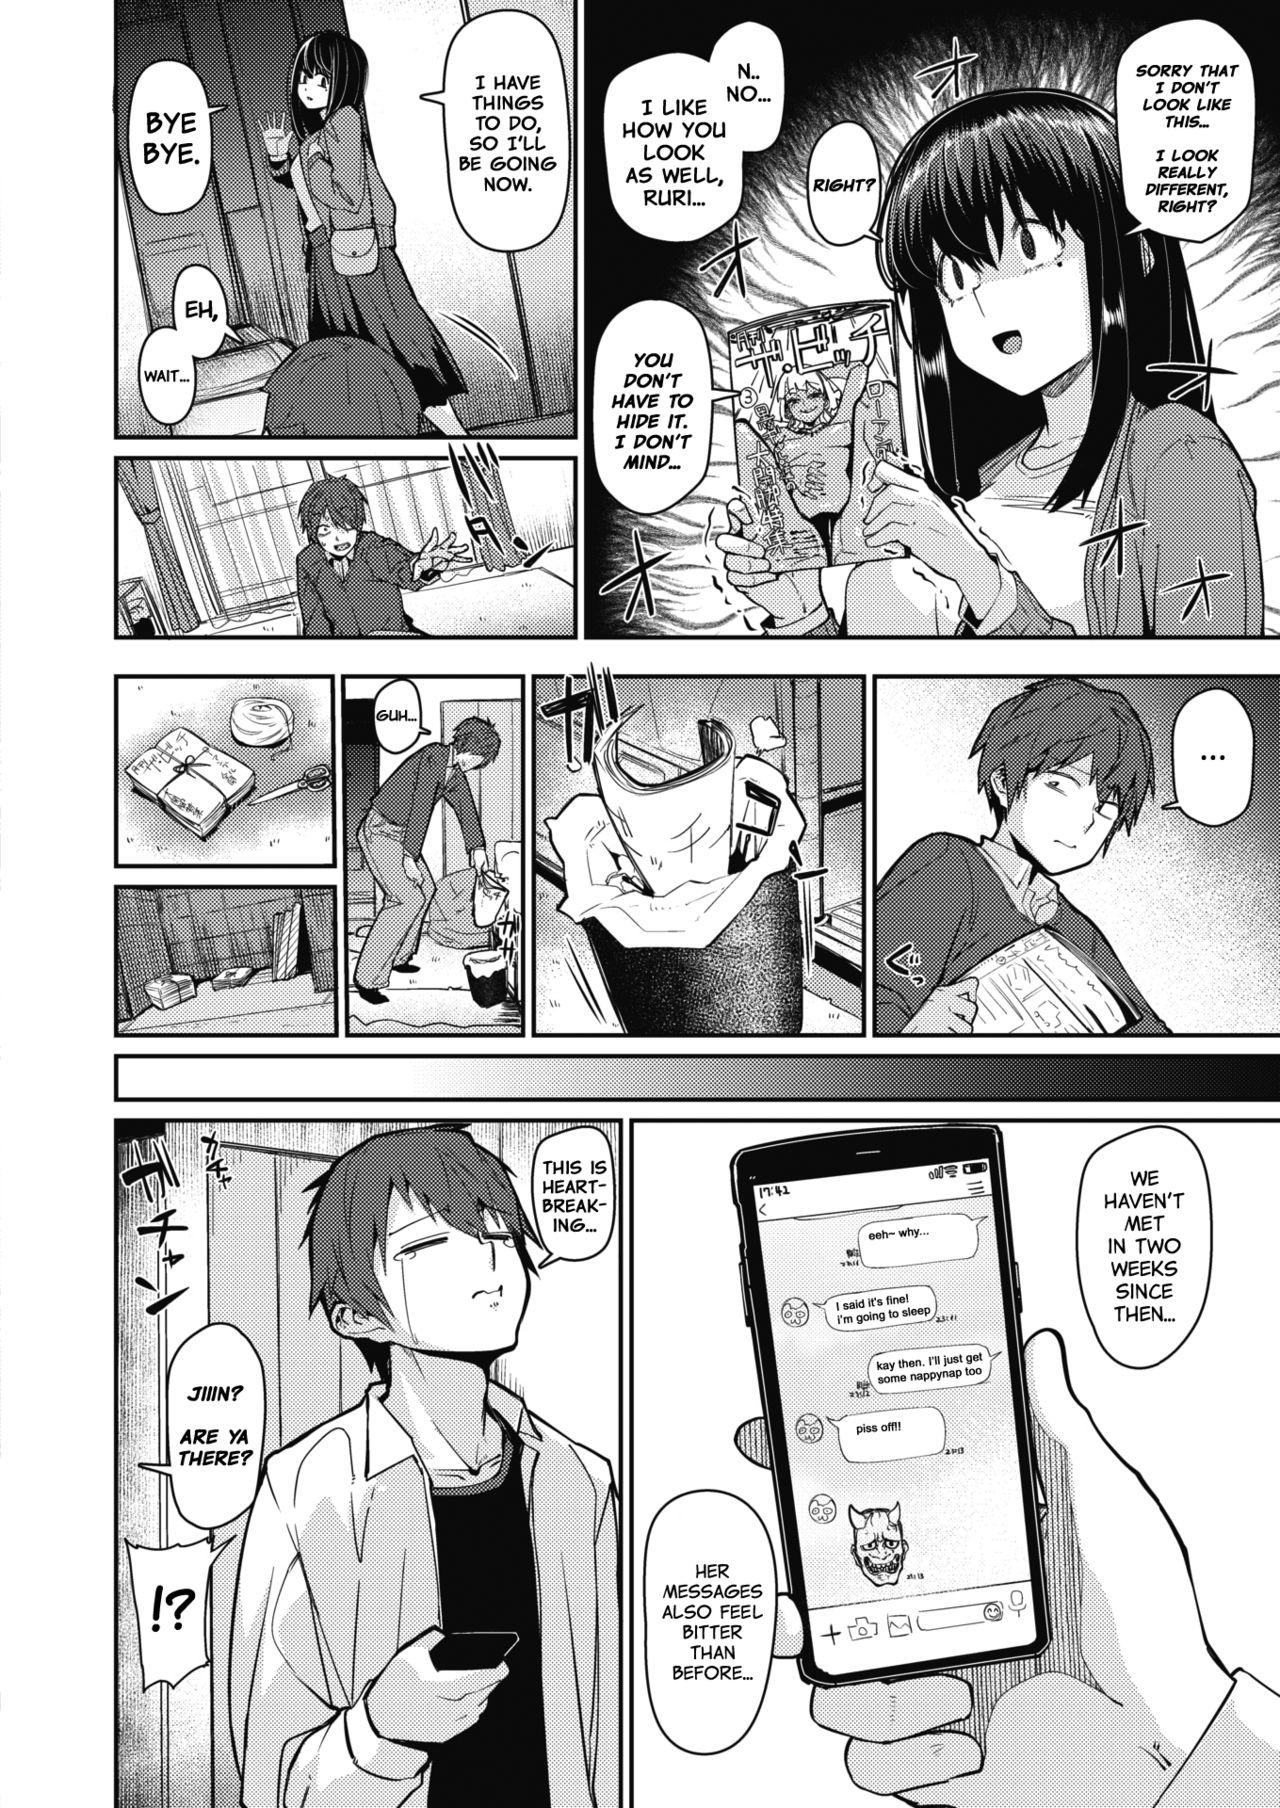 """Gekkan """"The Bitch"""" o Mita Onna no Hannou ni Tsuite   About the Reaction of the Girl Who Saw """"The Bitch Monthly"""" 1"""